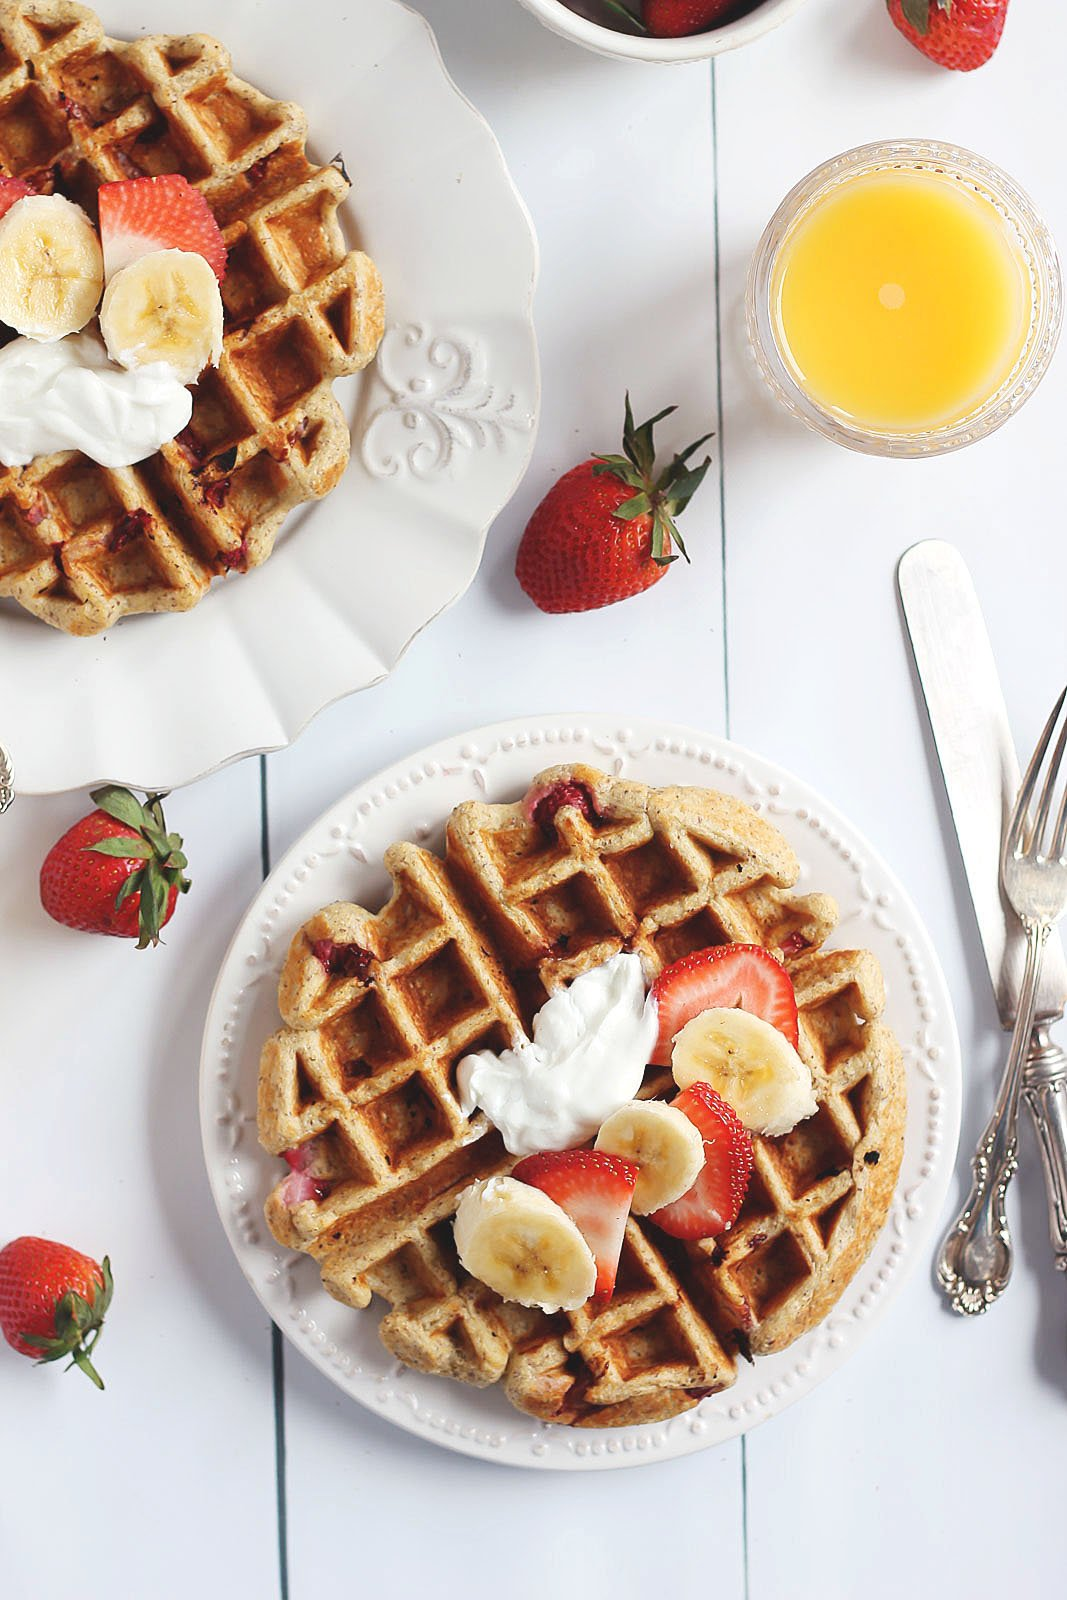 Two waffles topped with strawberries and bananas next to a glass of orange juice